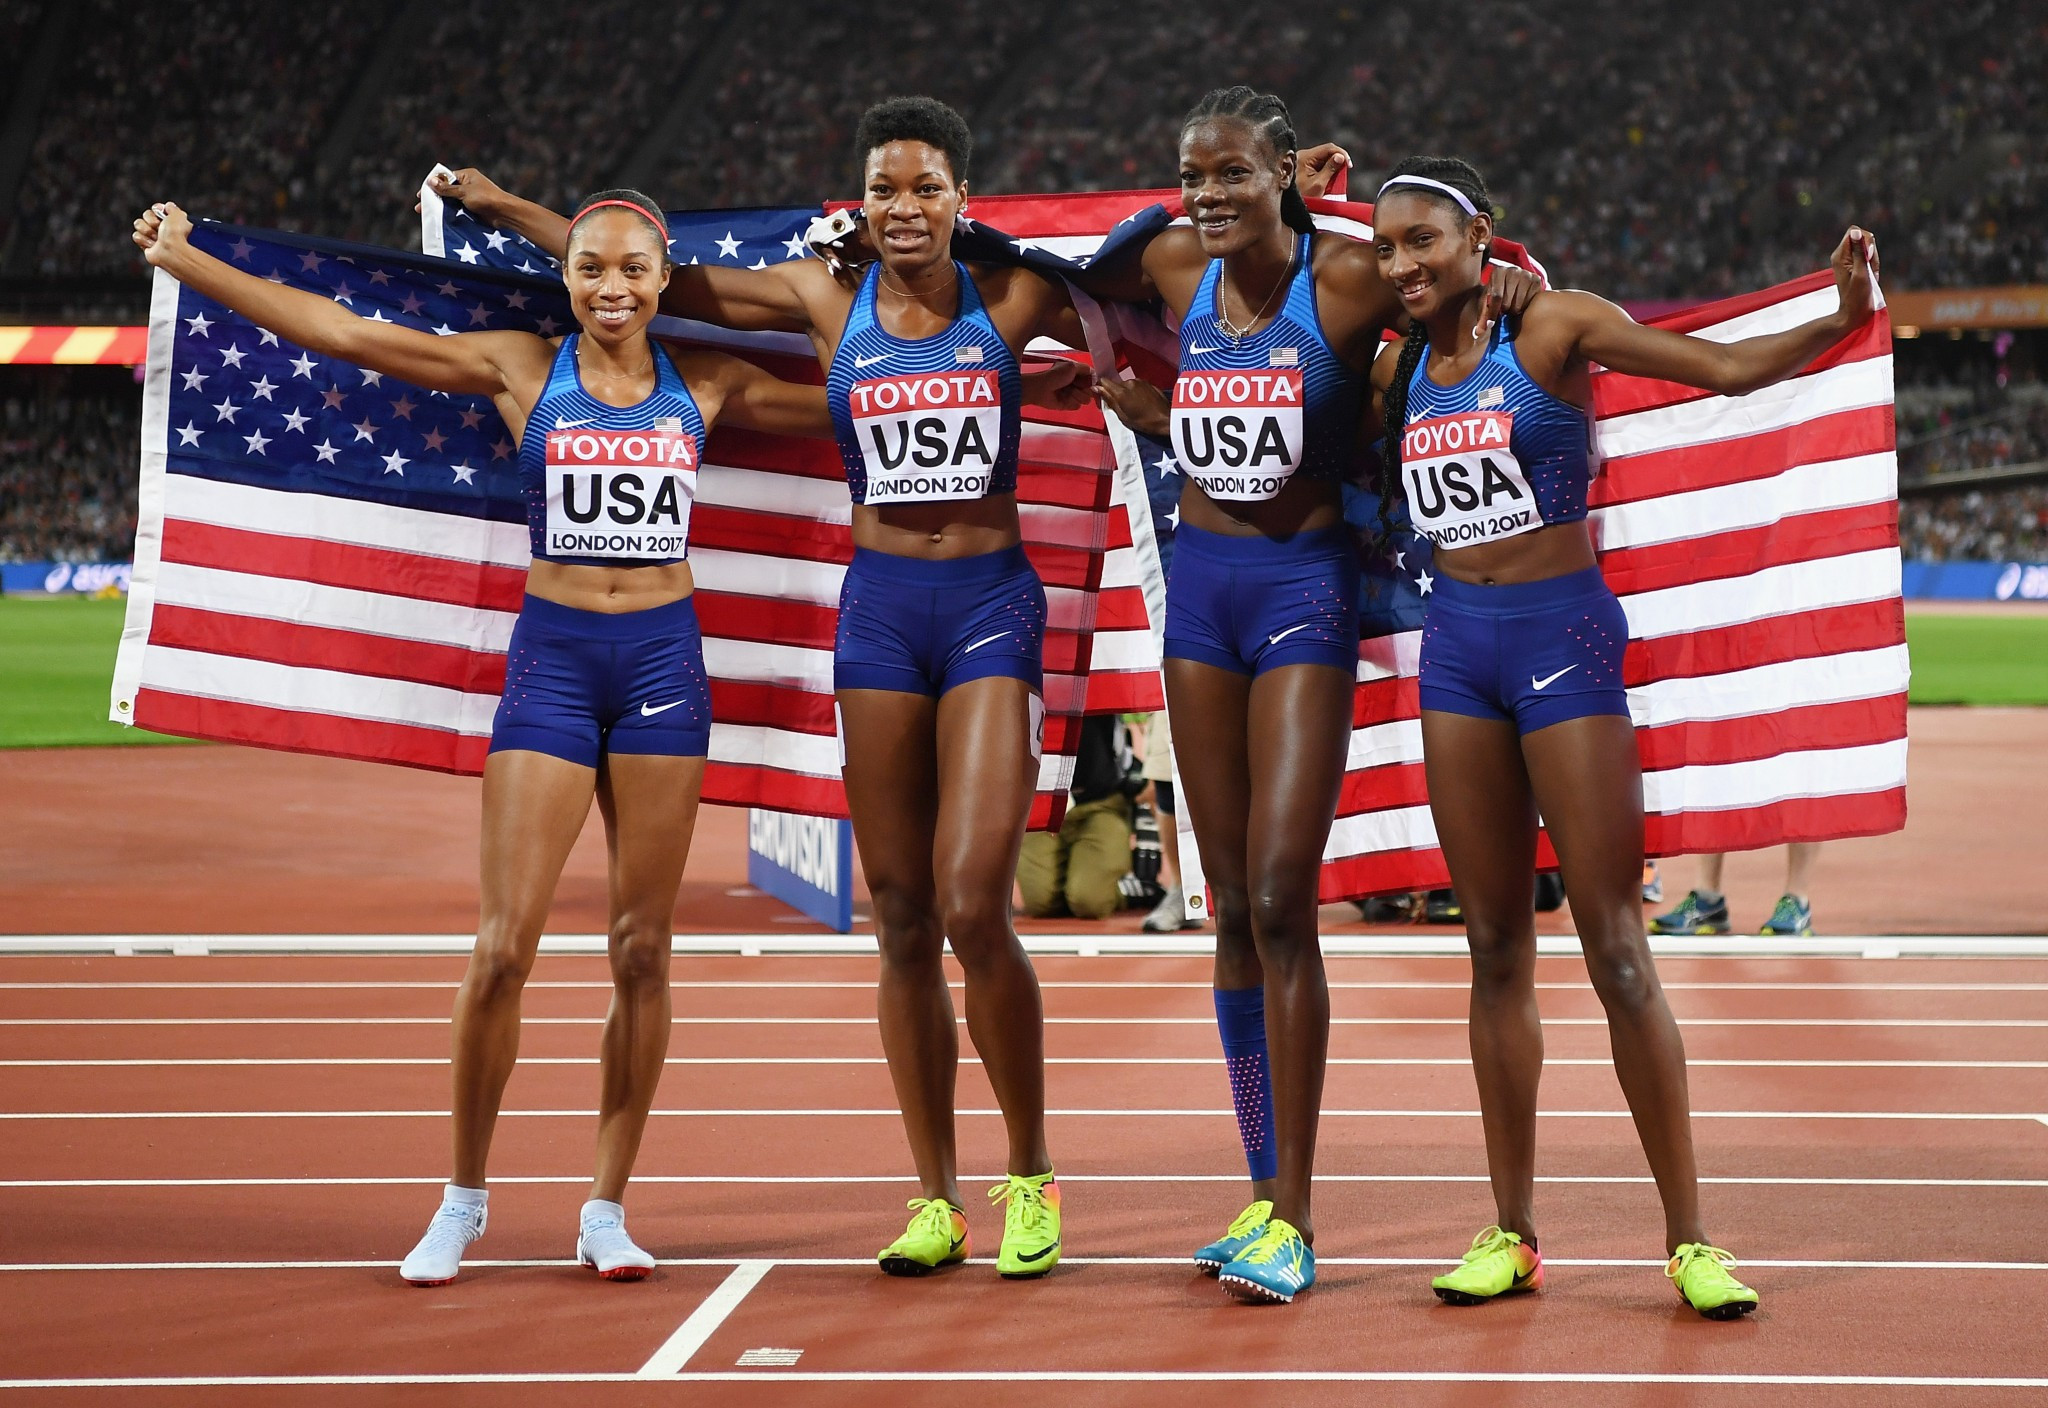 The United States blew the rest of the field out of the water on their way to the women's 4x400m relay crown ©Getty Images